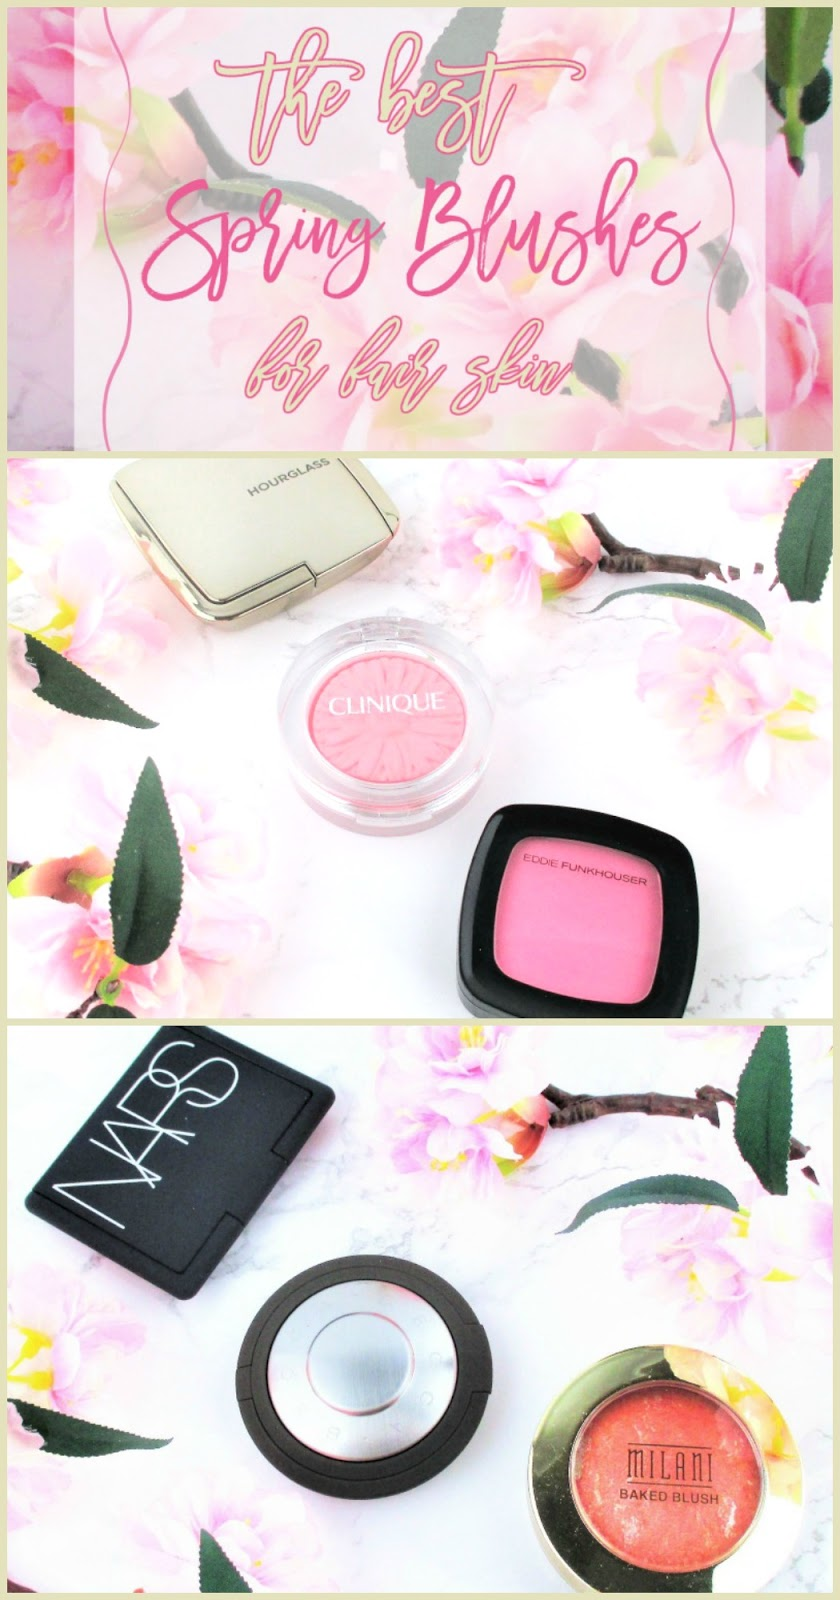 the best blushes for spring for fair skin in save, spend and splurge price points